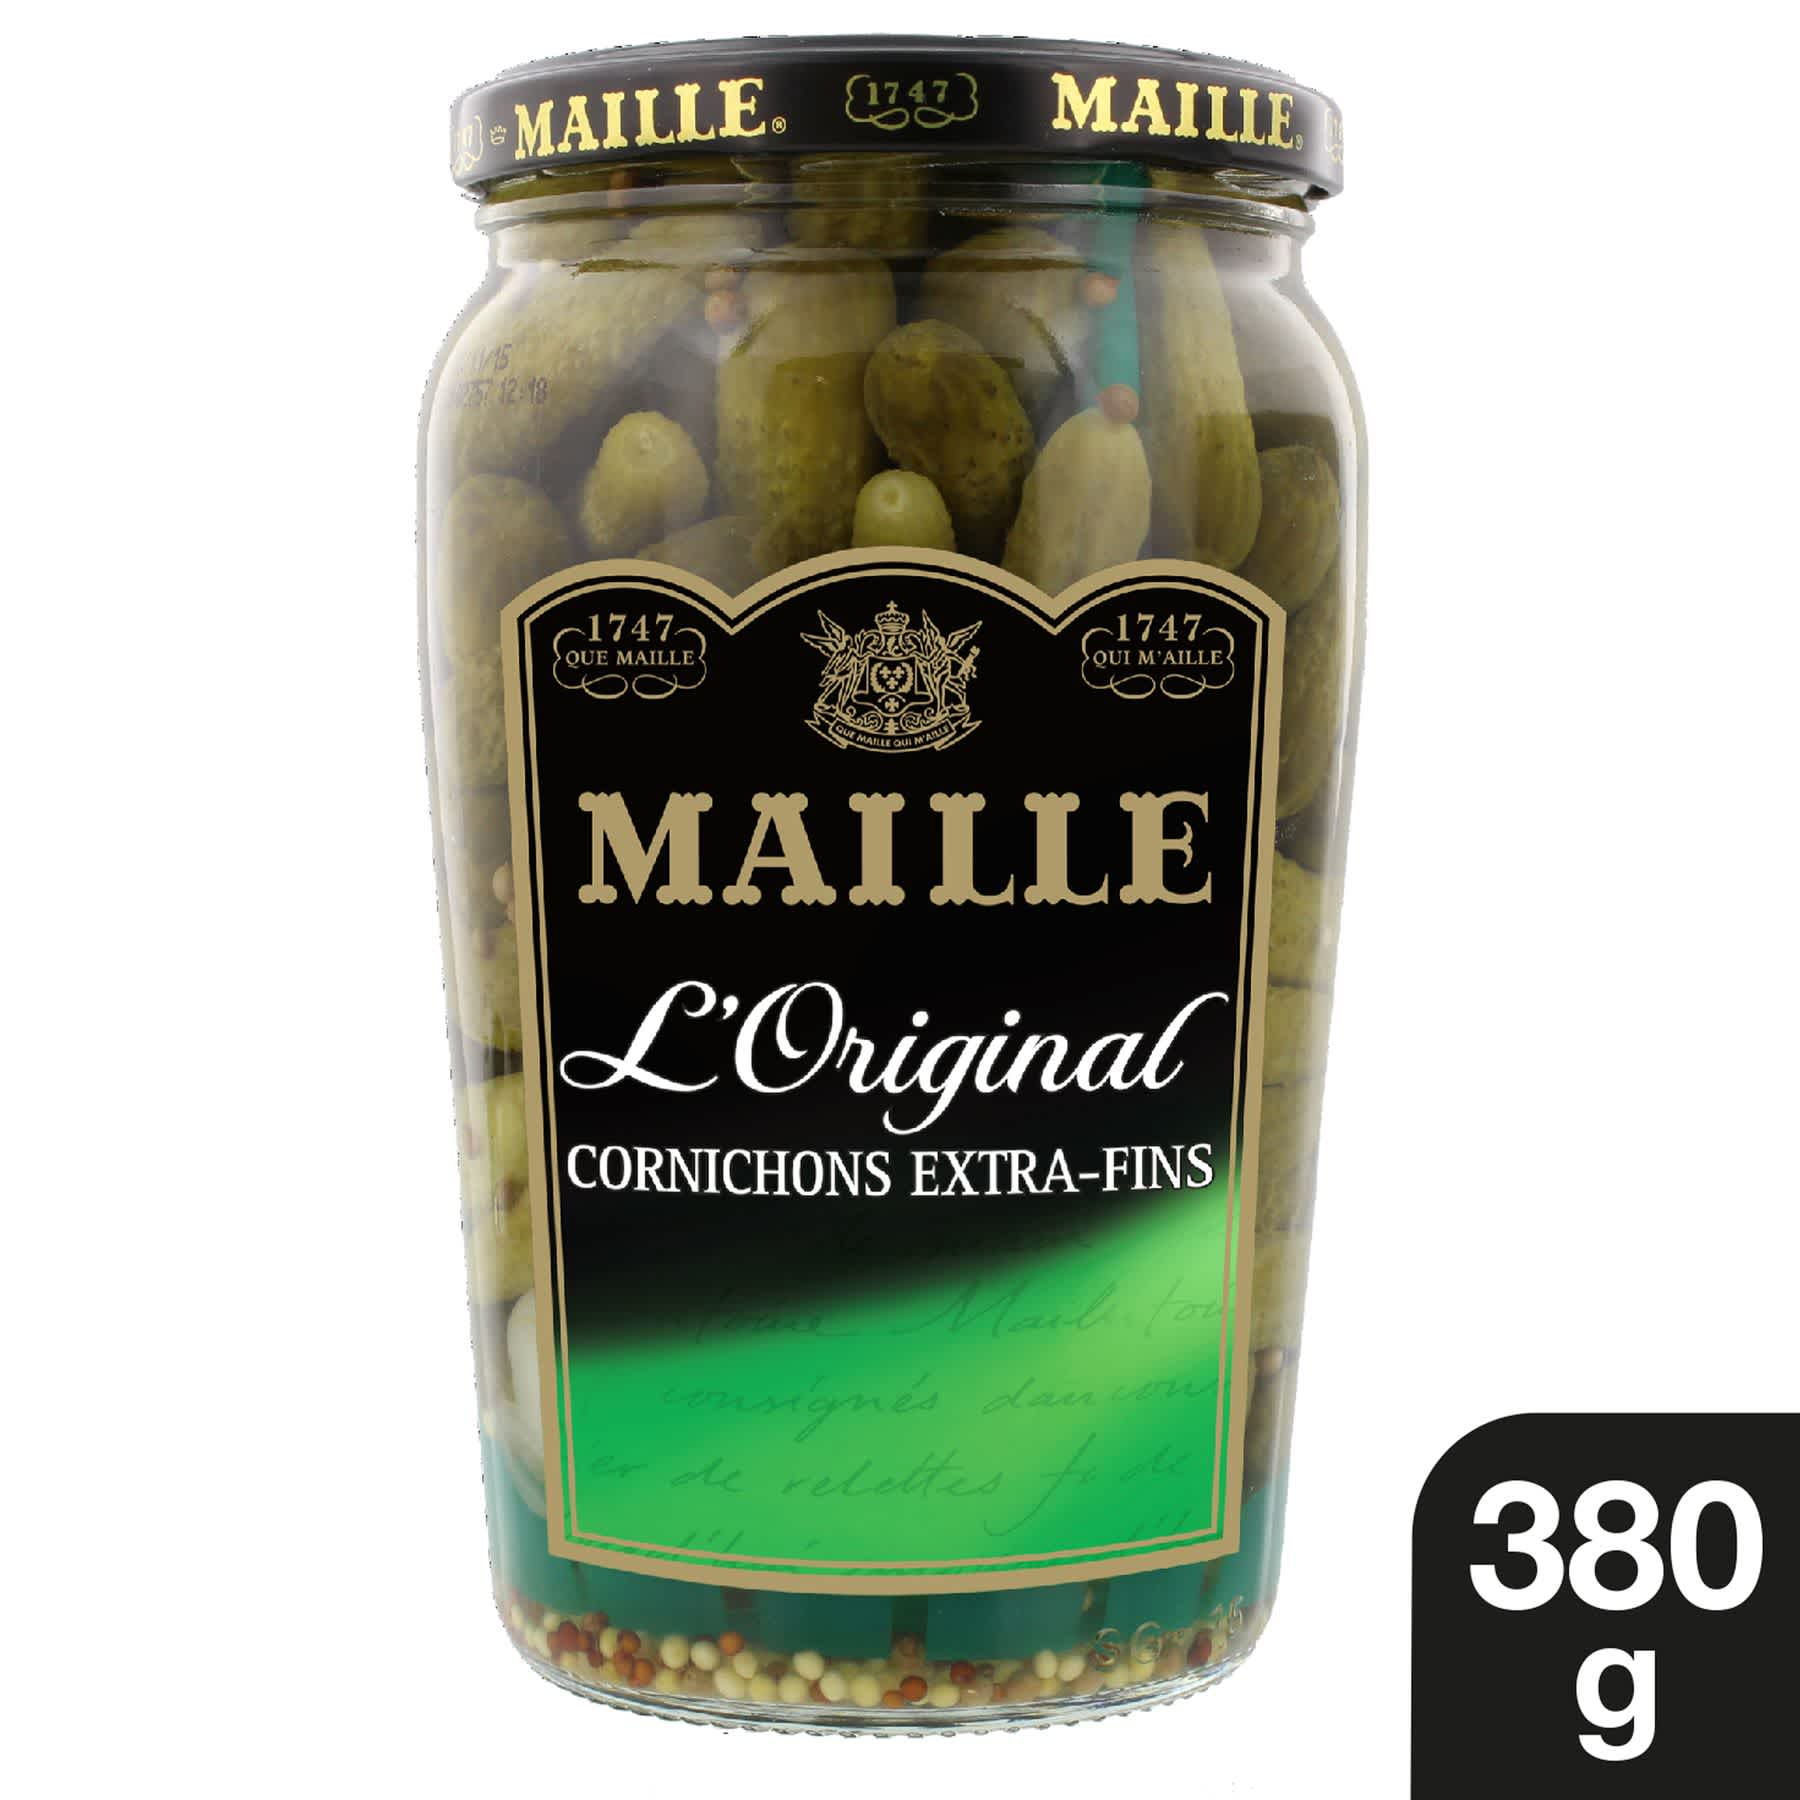 Maille - Cornichons Extra-Fins Bocal 380 g